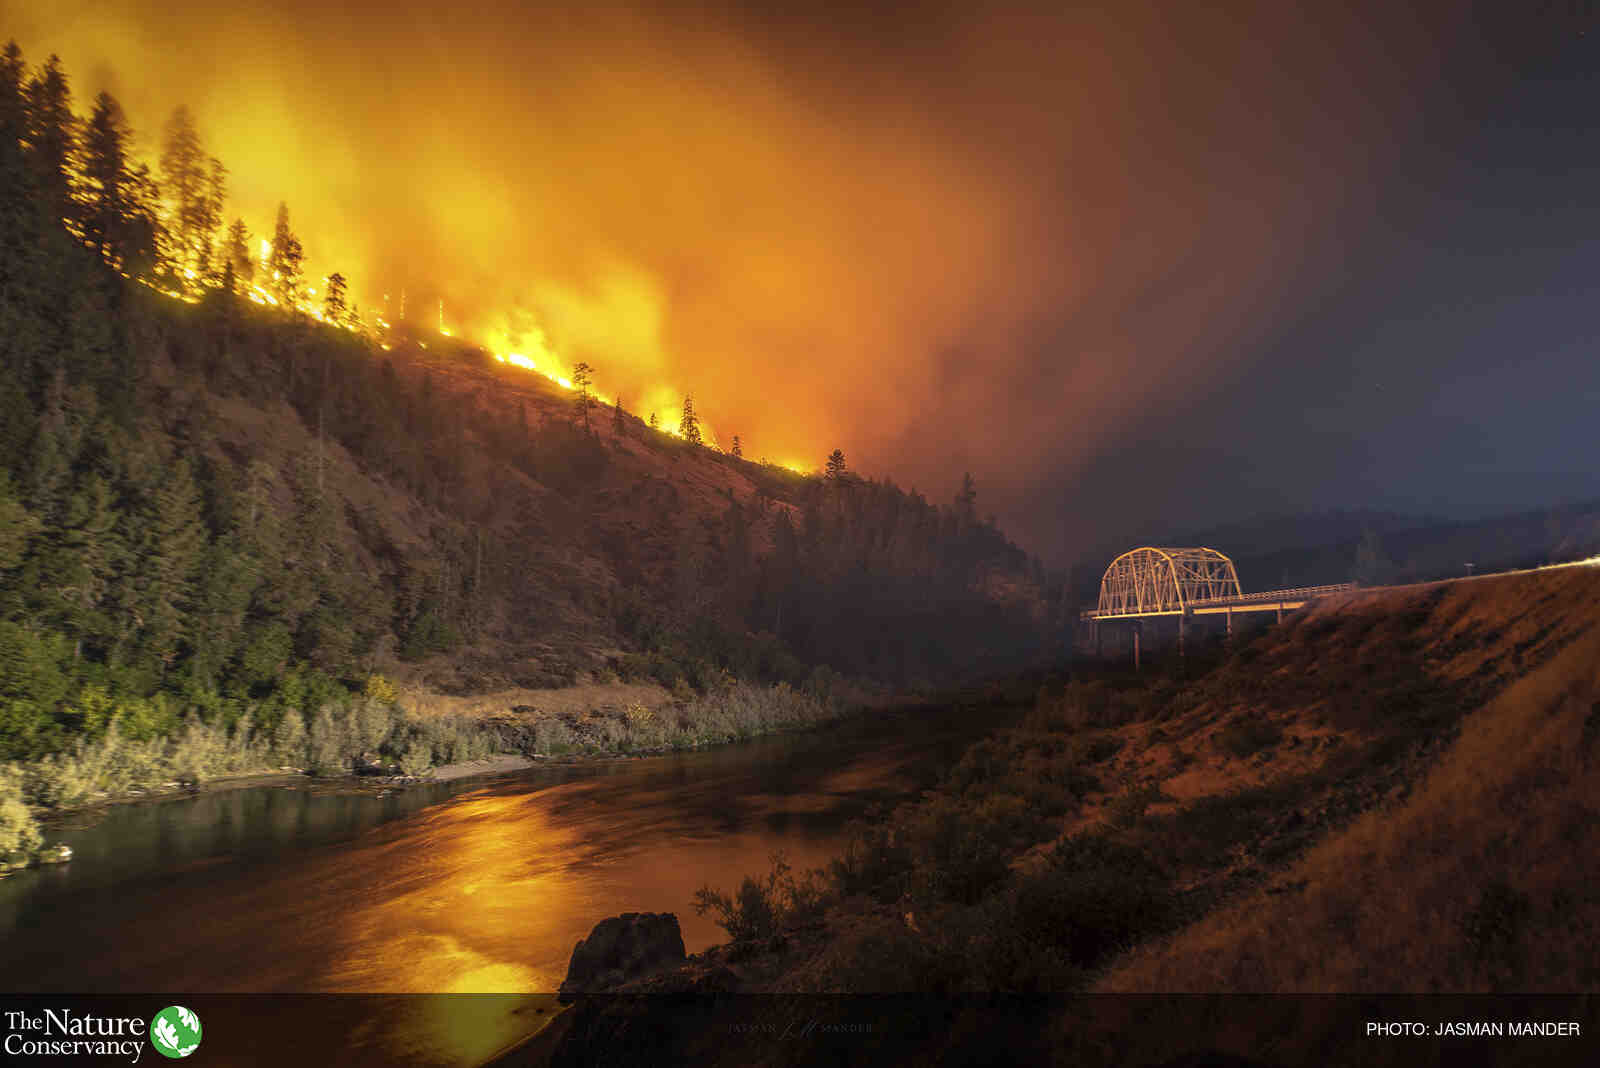 Wildfire on a ridge above a river and bridge.